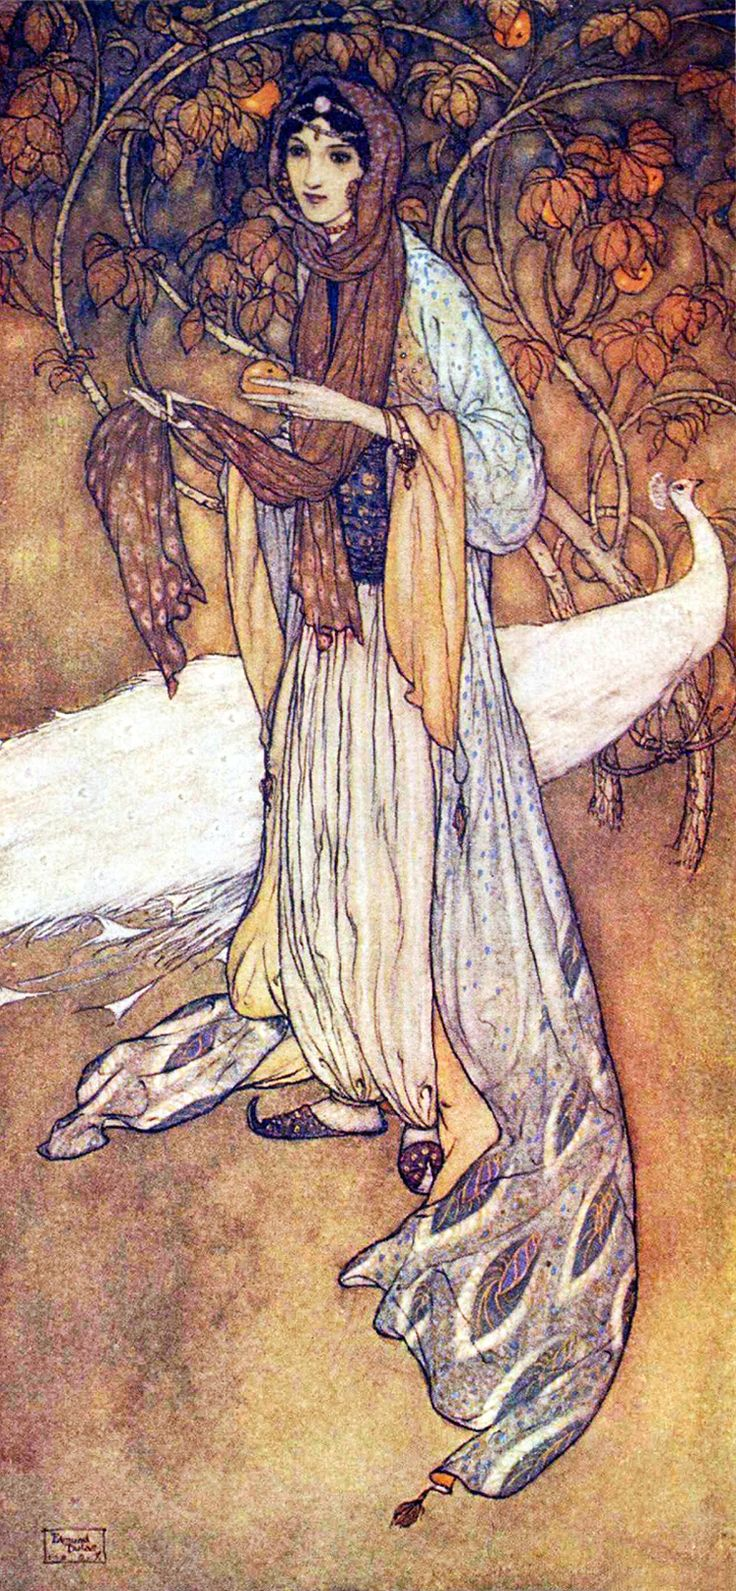 """Princess Scheherazadè, the heroine of the thousand-and-one nights. """"Stories from the Arabian Nights"""" (1907) illustrated by Edmund Dulac"""